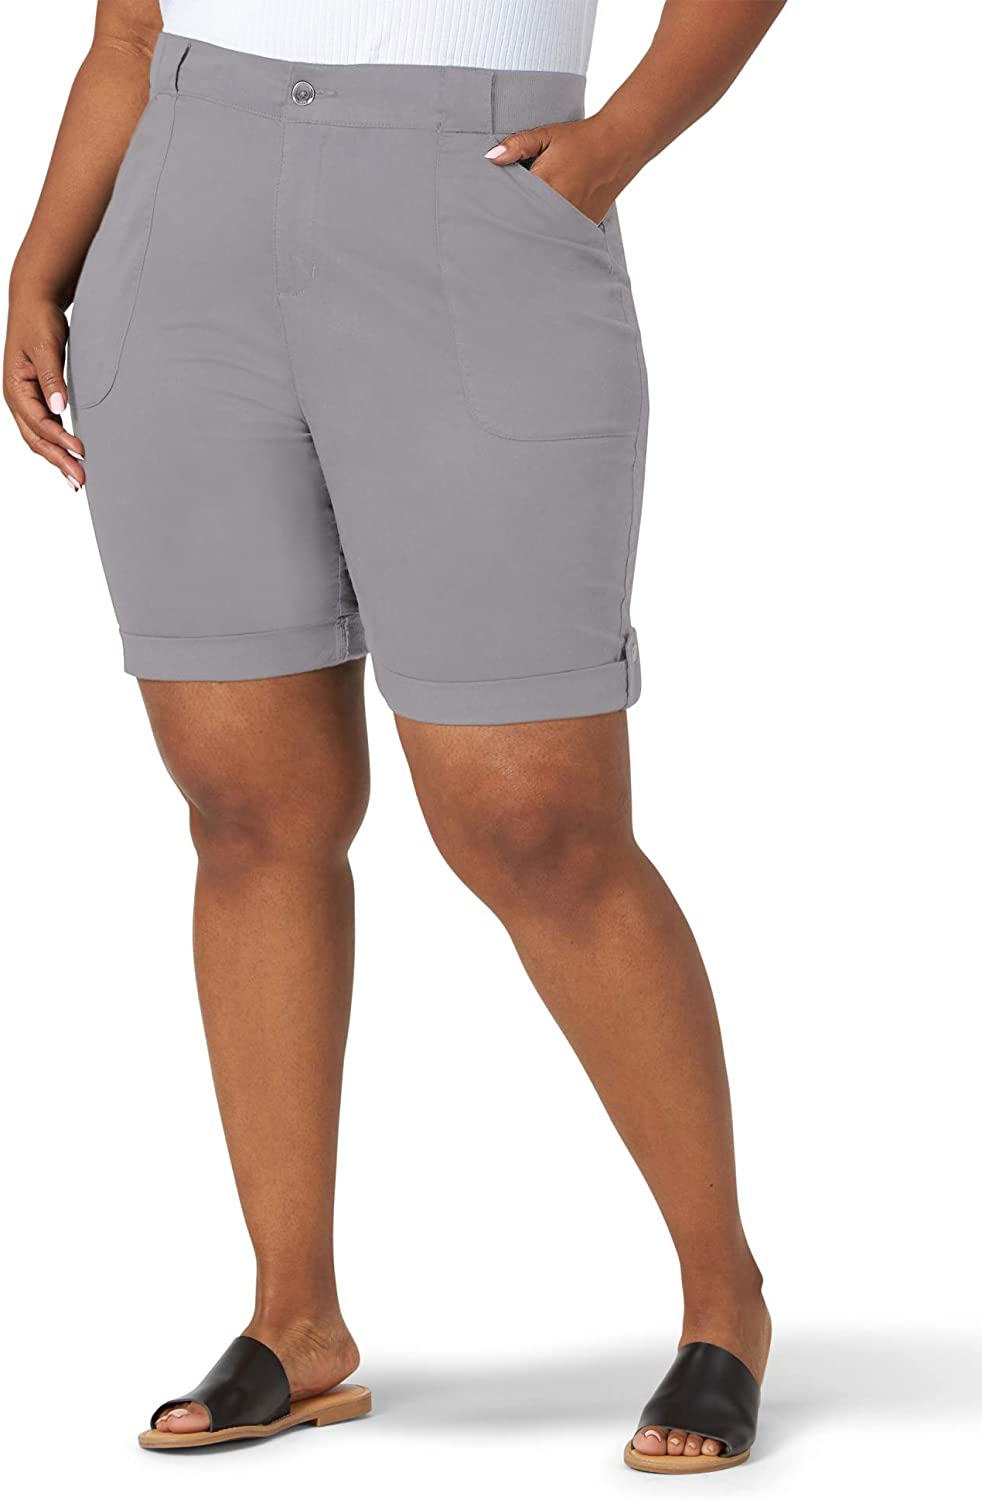 Lee Women's Plus Size Flex-to-go Relaxed Fit Utility Bermuda Short